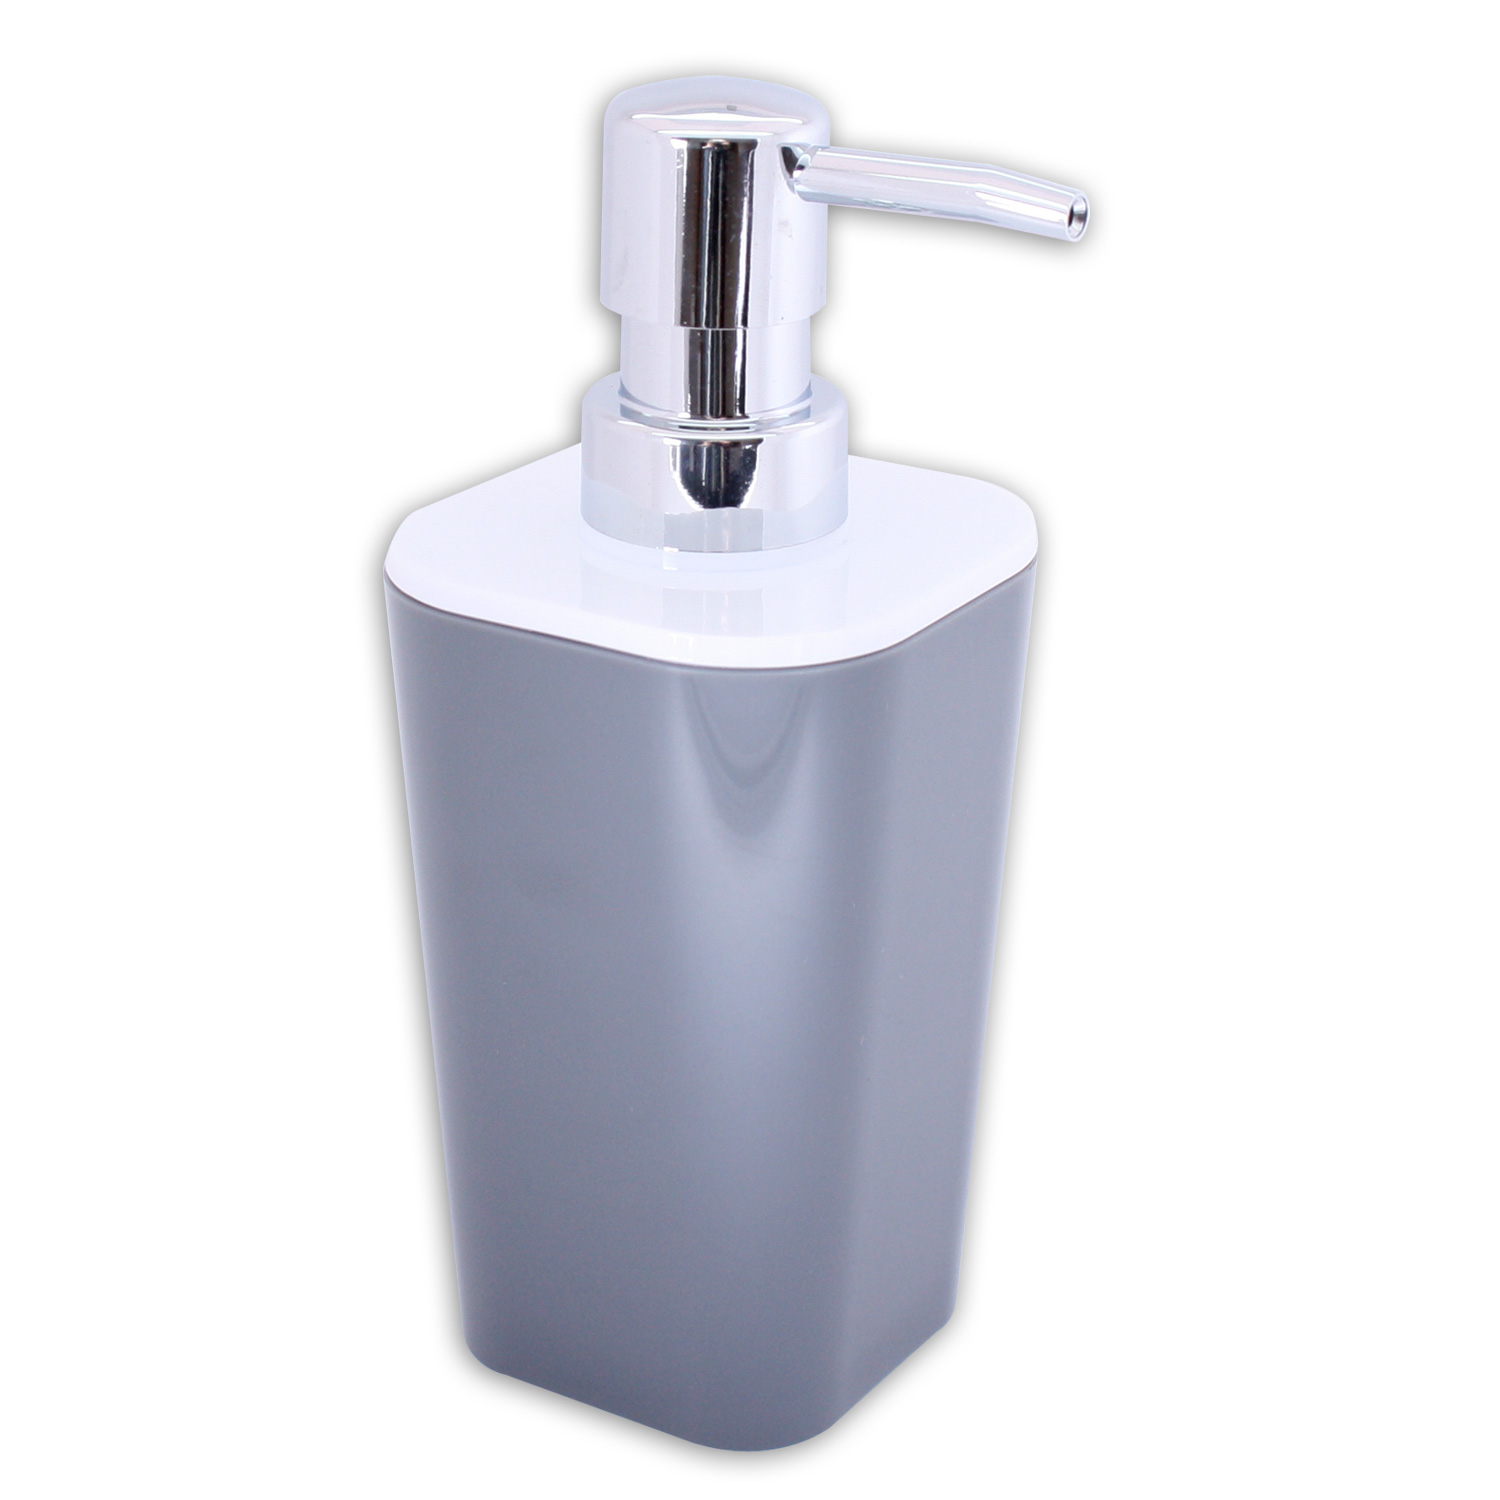 Dispensador de jabon sharemedoc - Dispensador jabon cocina ...